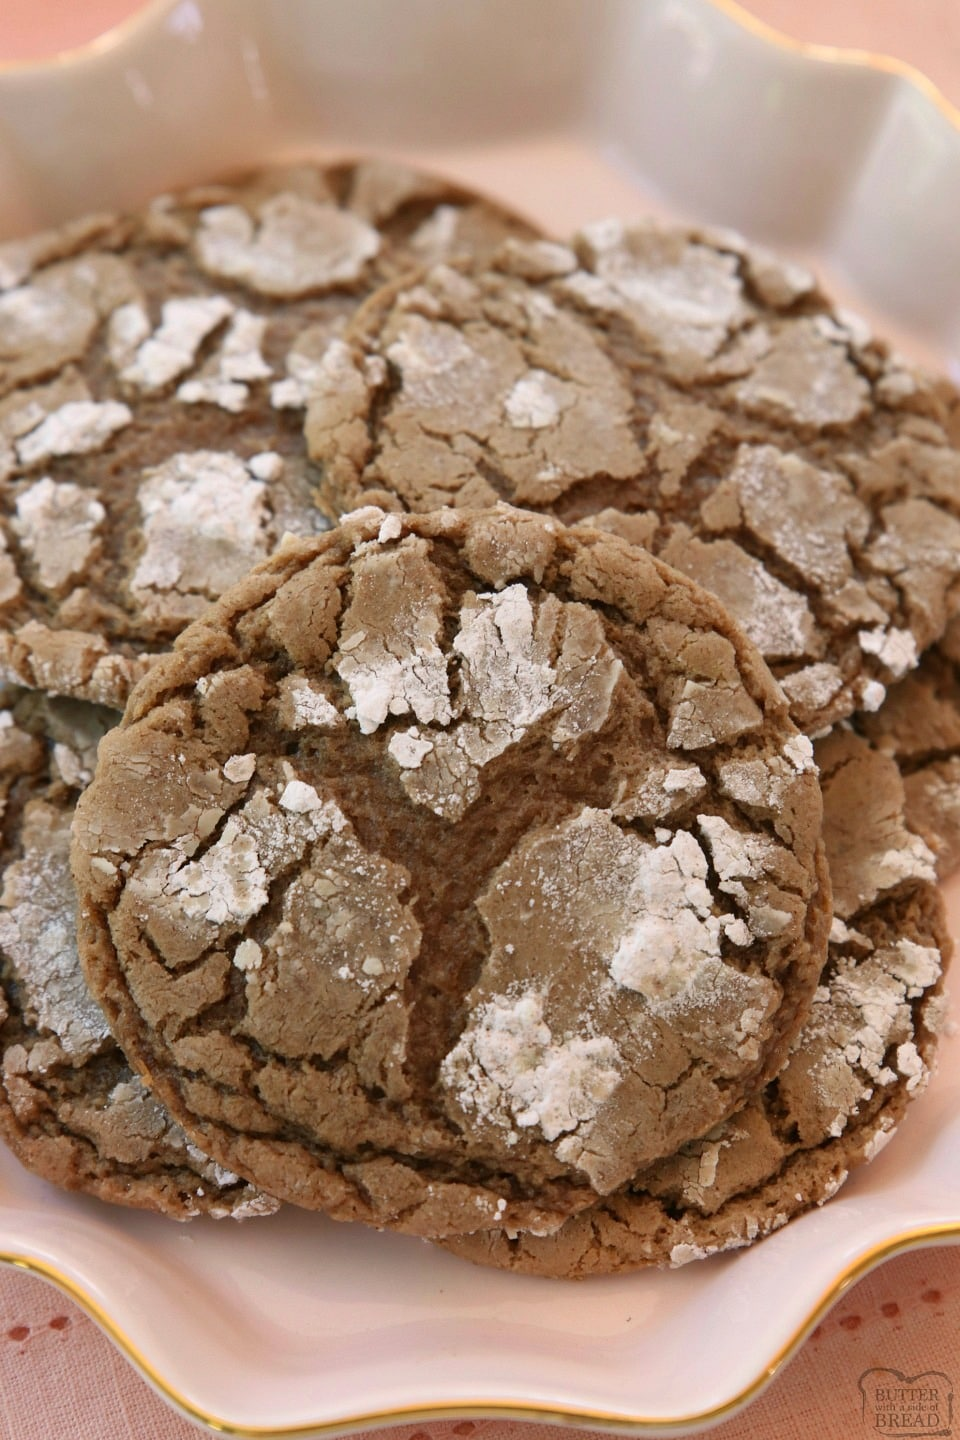 How to make Cinnamon Chocolate Crinkle Cookies